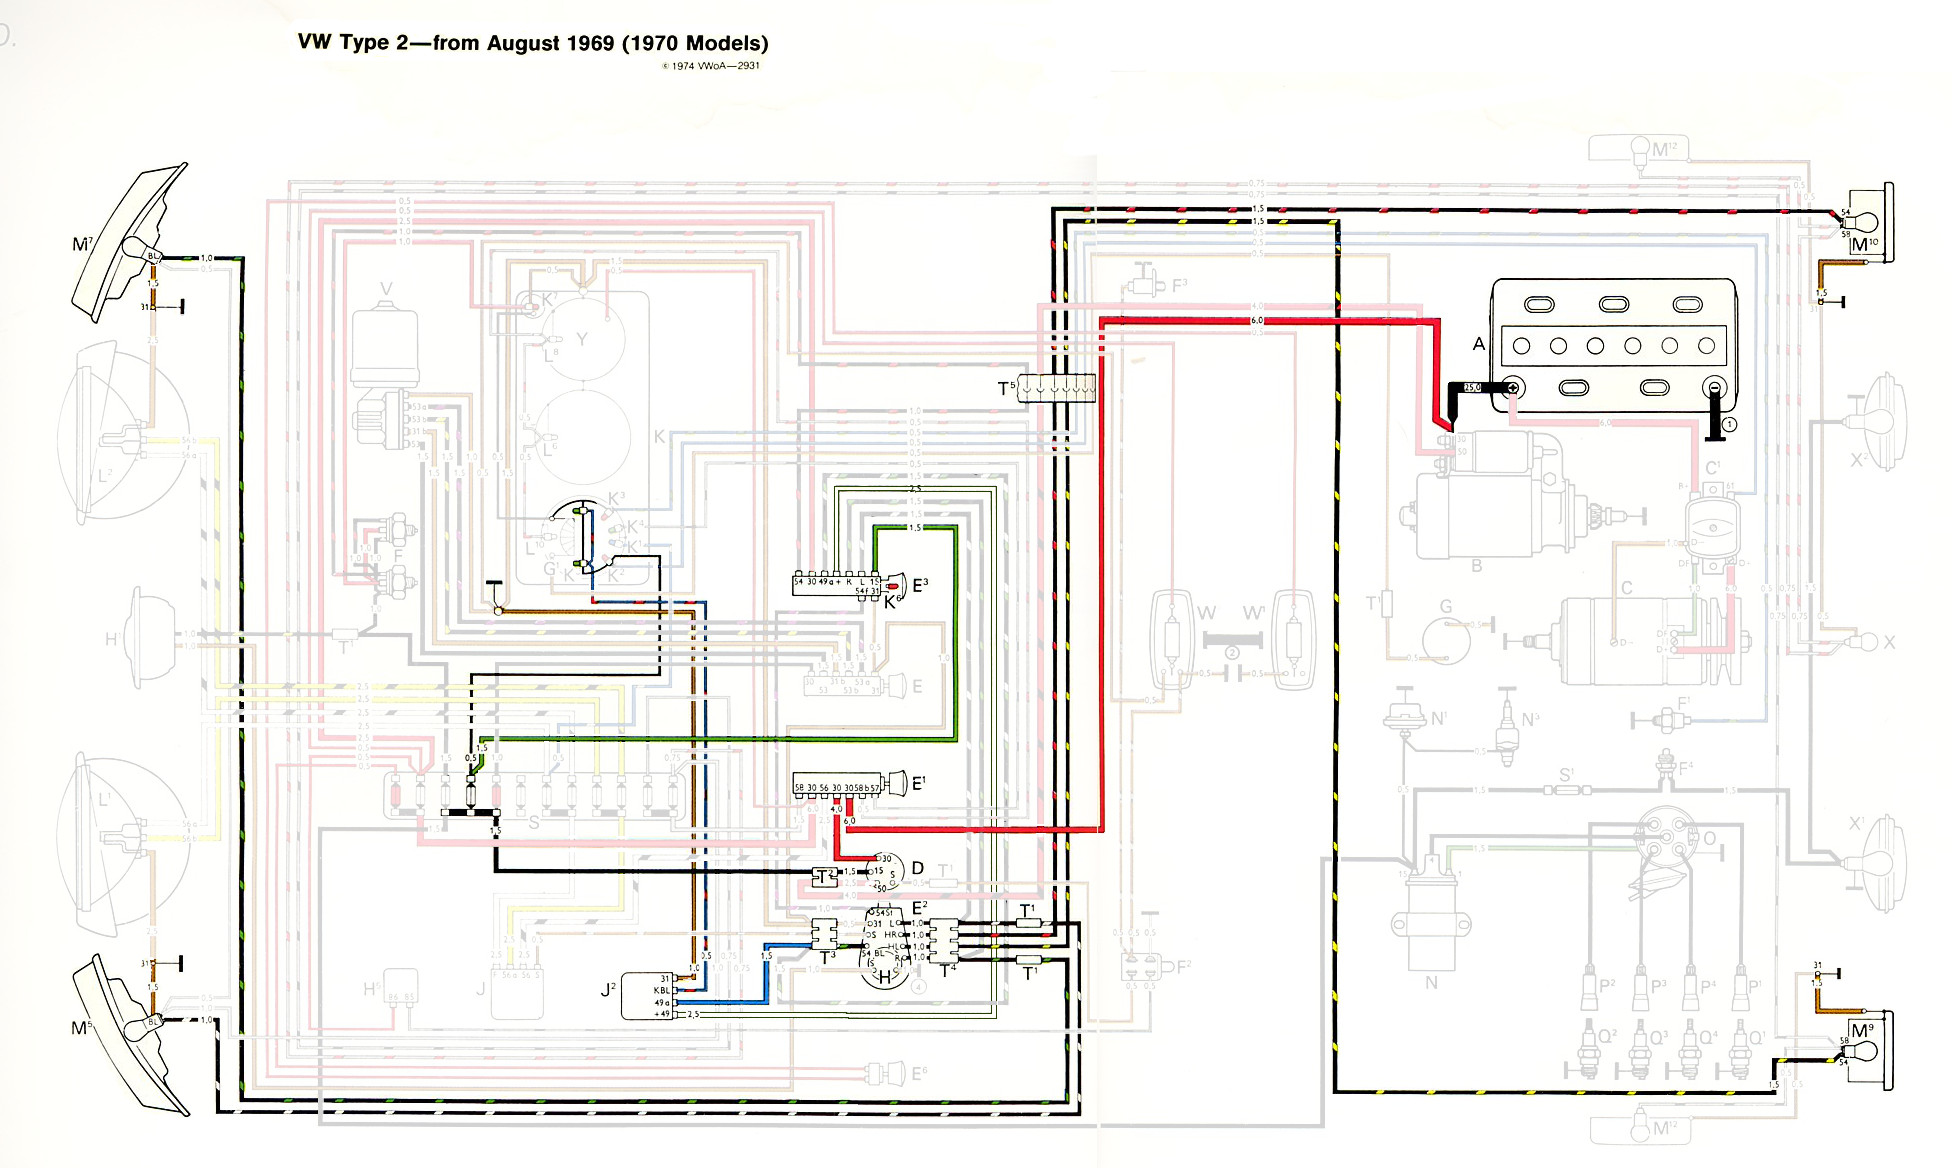 Type 2 Wiring Diagrams 73 Camaro Engine Diagram